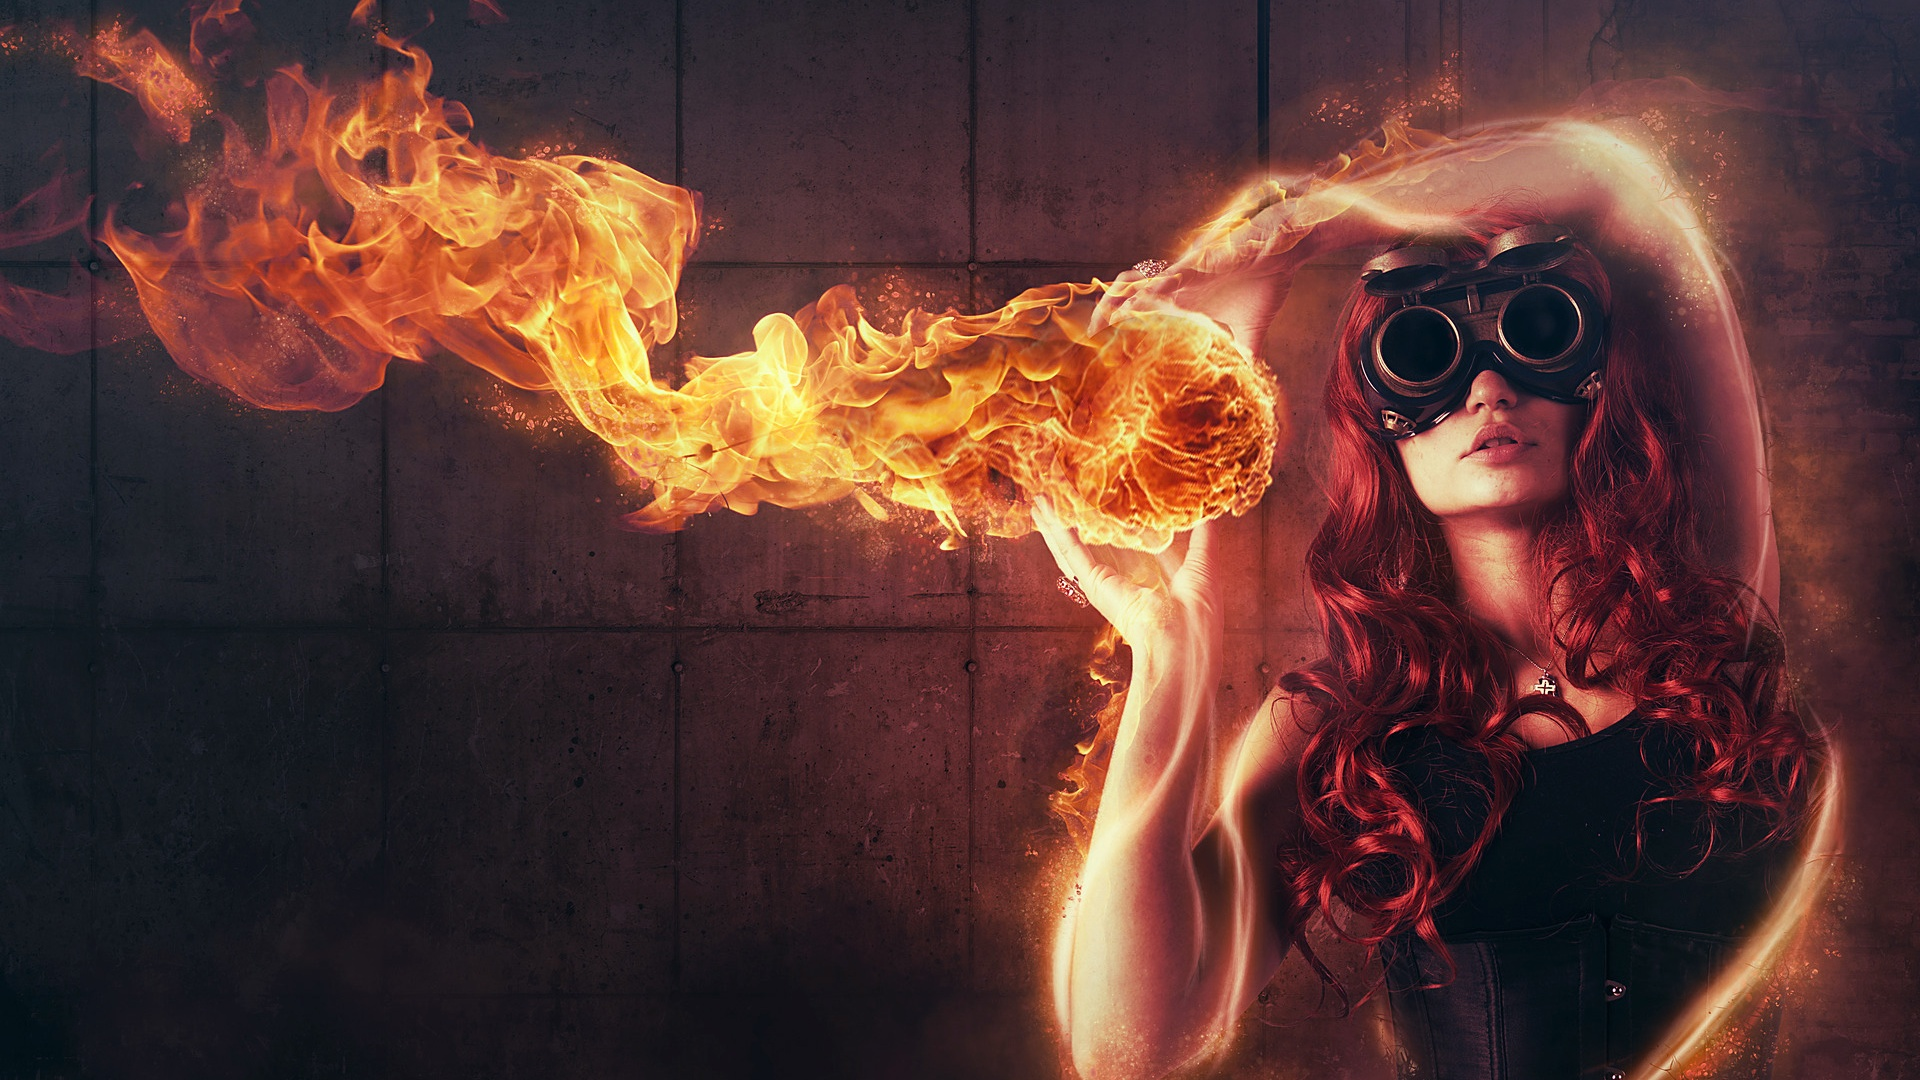 Wallpaper Girl Fire Red Abstract Creative 1920x1200 Hd